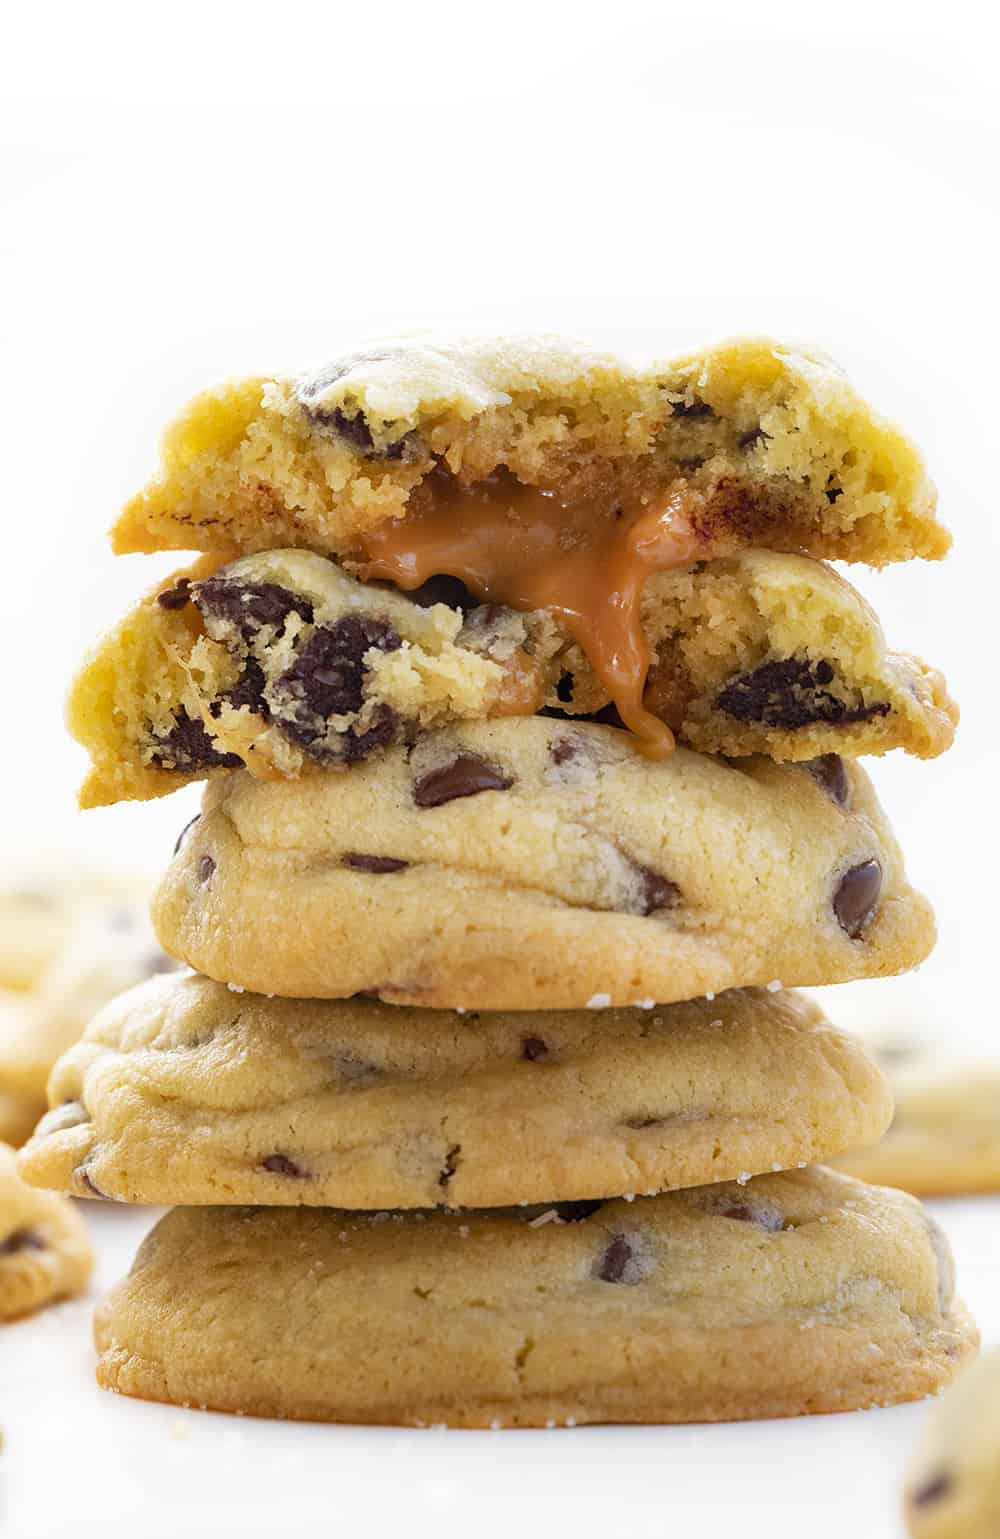 Stacked Salted Caramel Chocolate Chip Cookies